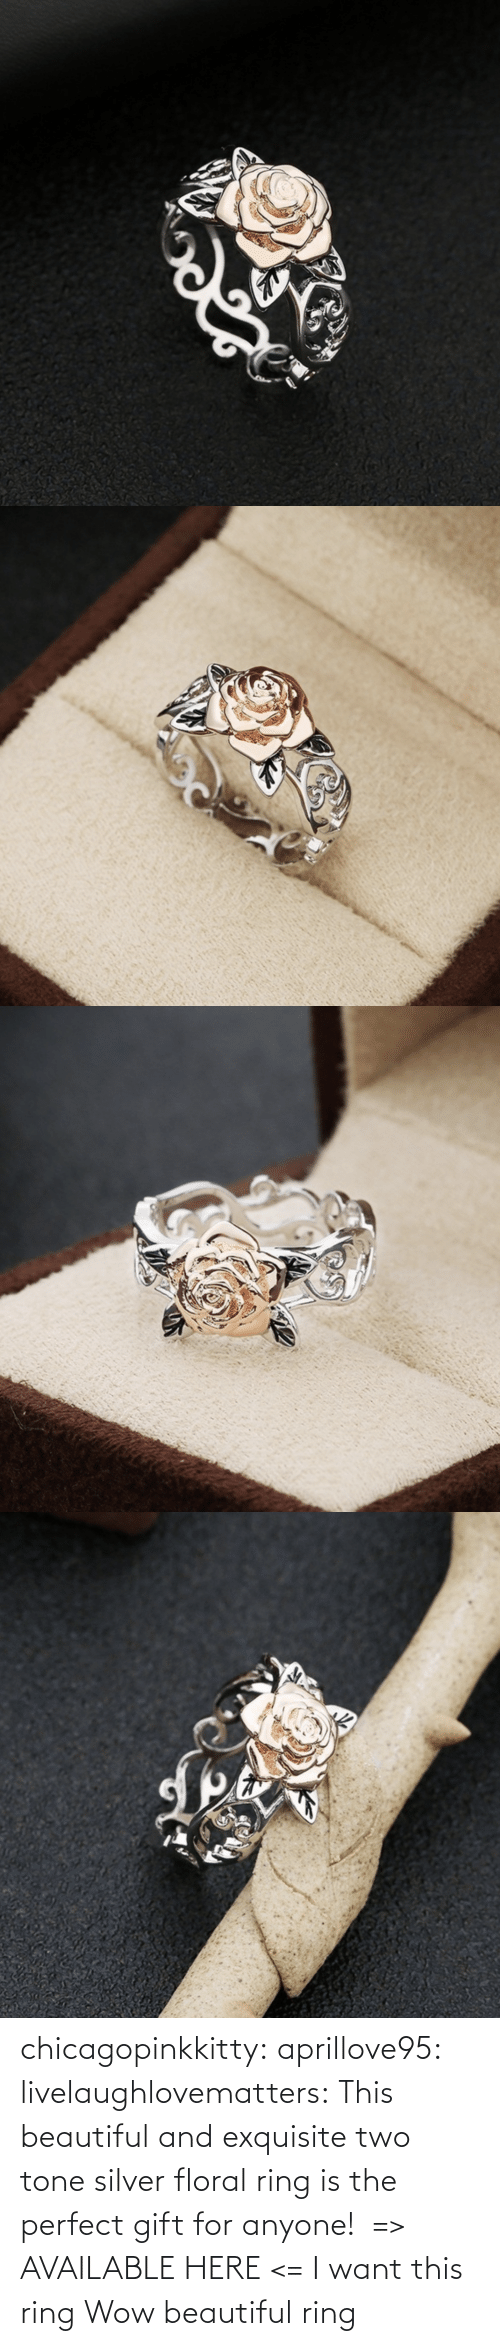 tone: chicagopinkkitty: aprillove95:  livelaughlovematters:  This beautiful and exquisite two tone silver floral ring is the perfect gift for anyone!  => AVAILABLE HERE <=    I want this ring     Wow beautiful ring